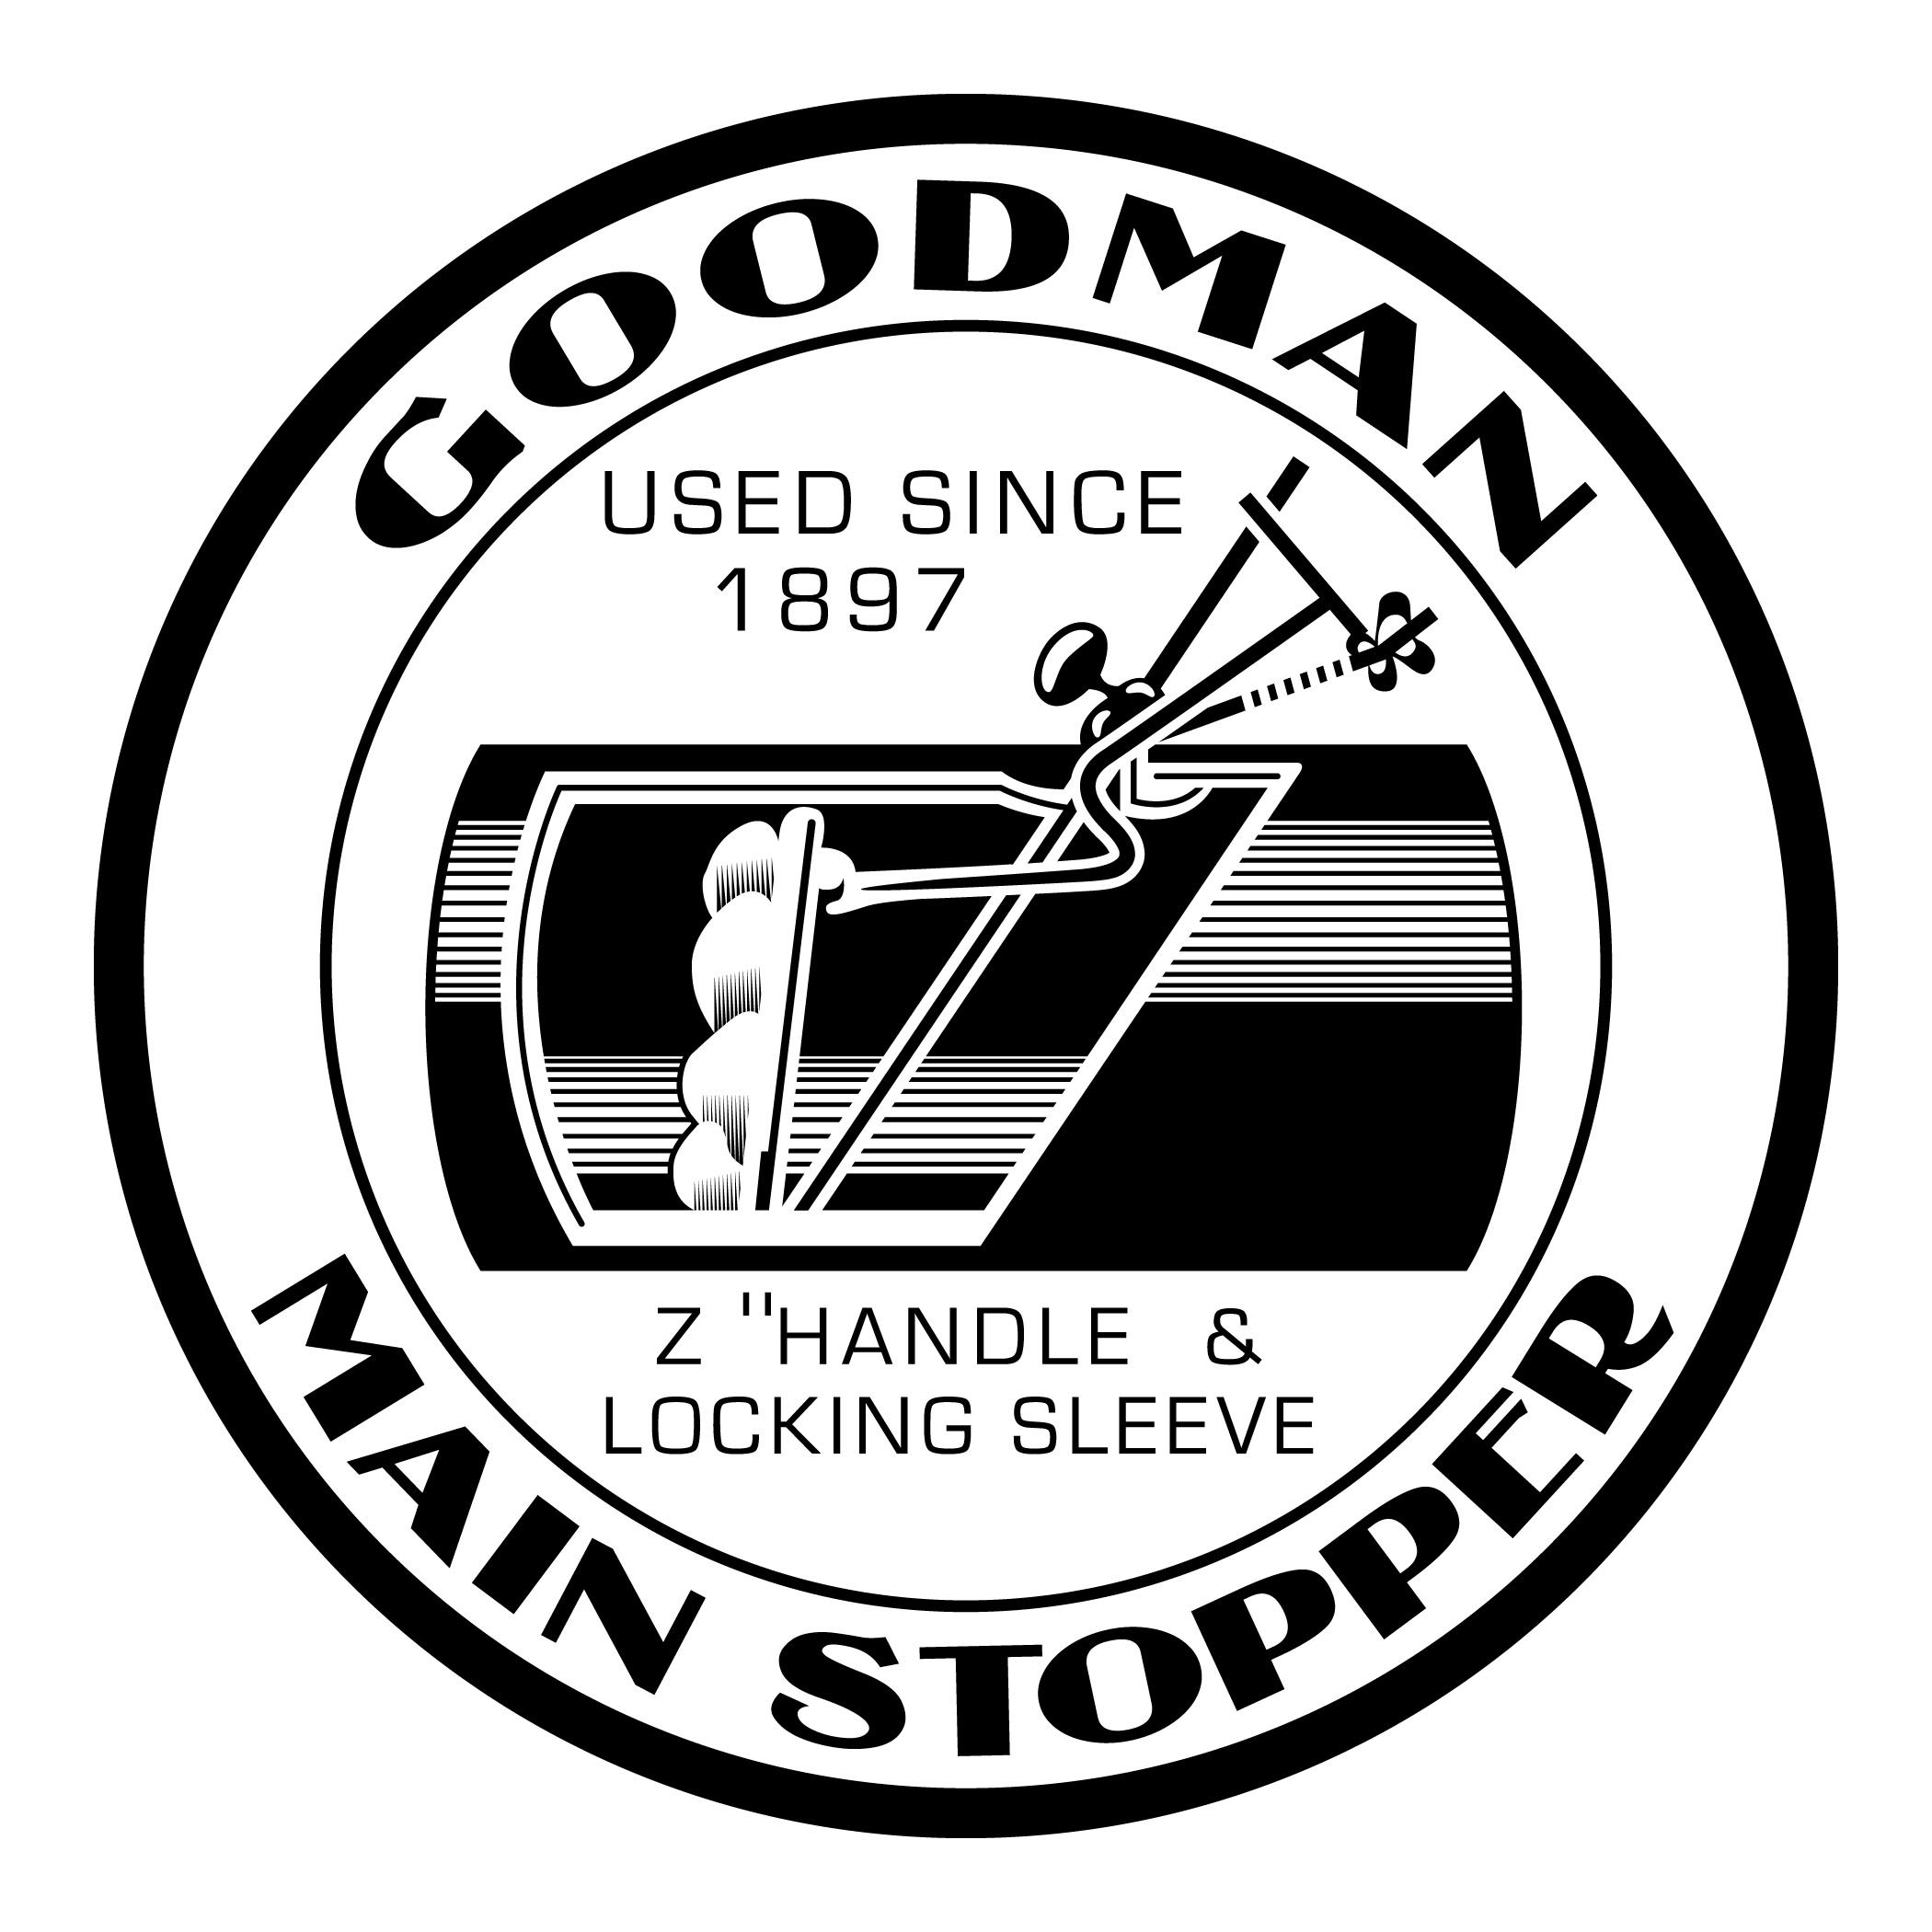 Goodman Main Stopper logo doctor.jpg